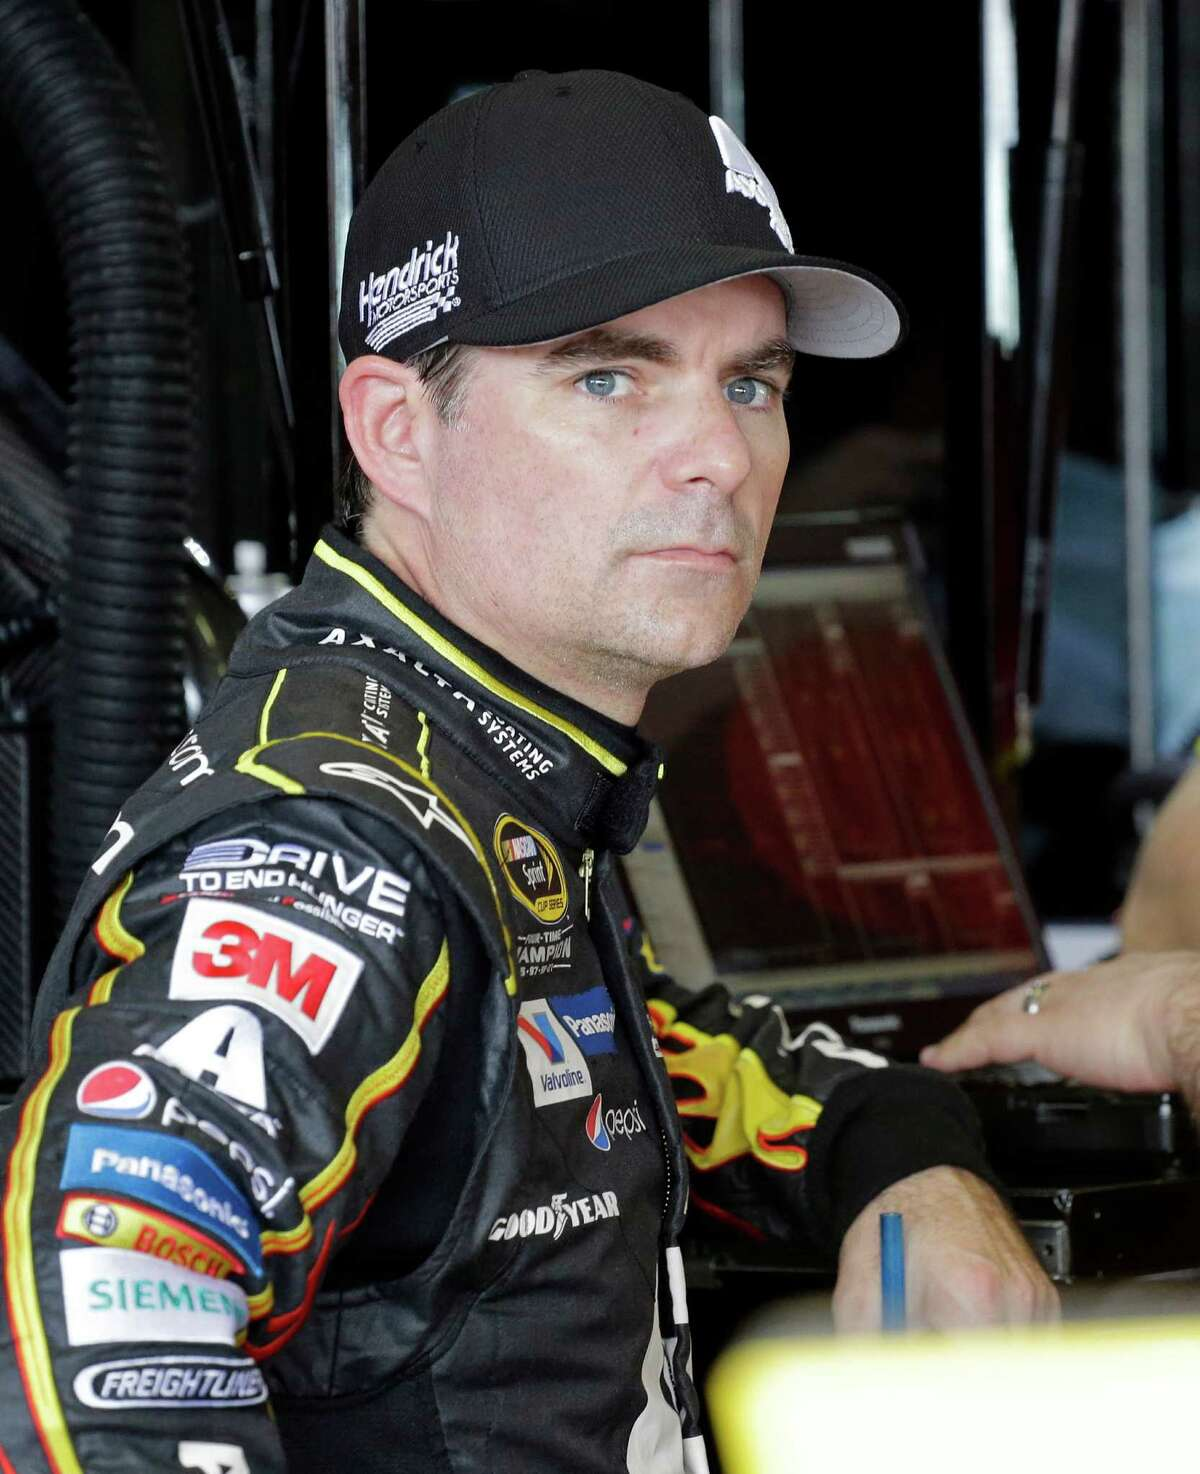 Jeff Gordon looks on in the garage area before the NASCAR Sprint Cup Series practice auto race, Saturday, Nov. 21, 2015, at Homestead-Miami Speedway in Homestead, Fla. (AP Photo/Terry Renna) ORG XMIT: FLHM106